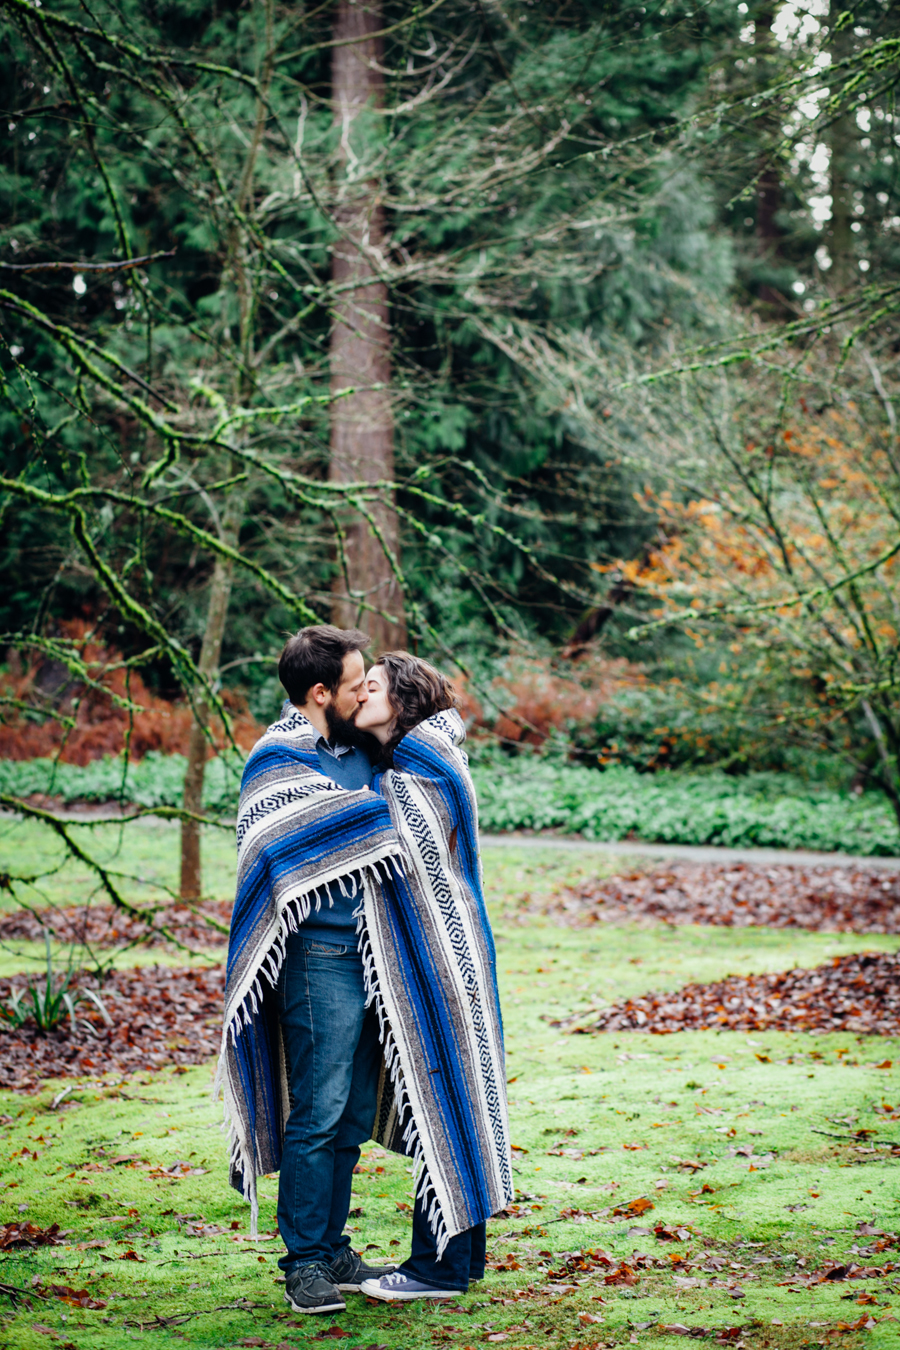 016-uw-arboretum-seattle-engagement-photographer-katheryn-moran-photography.jpg